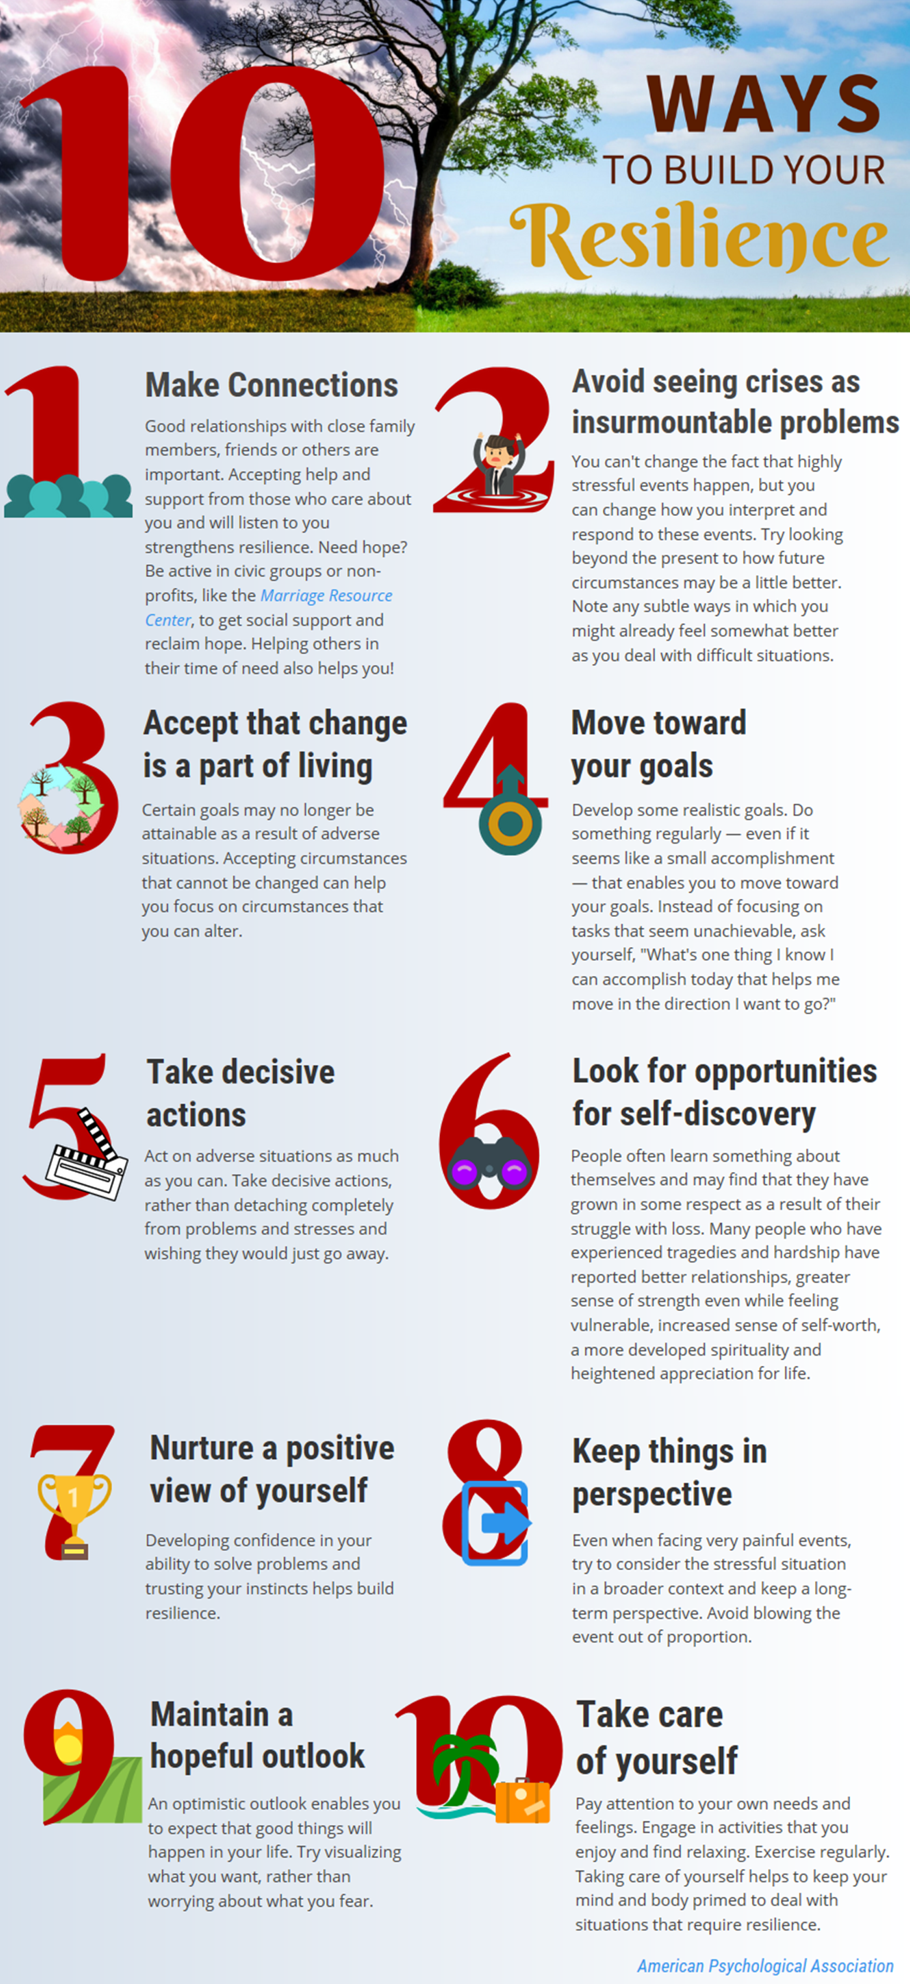 10 Ways to Build Your Resilience Infographic